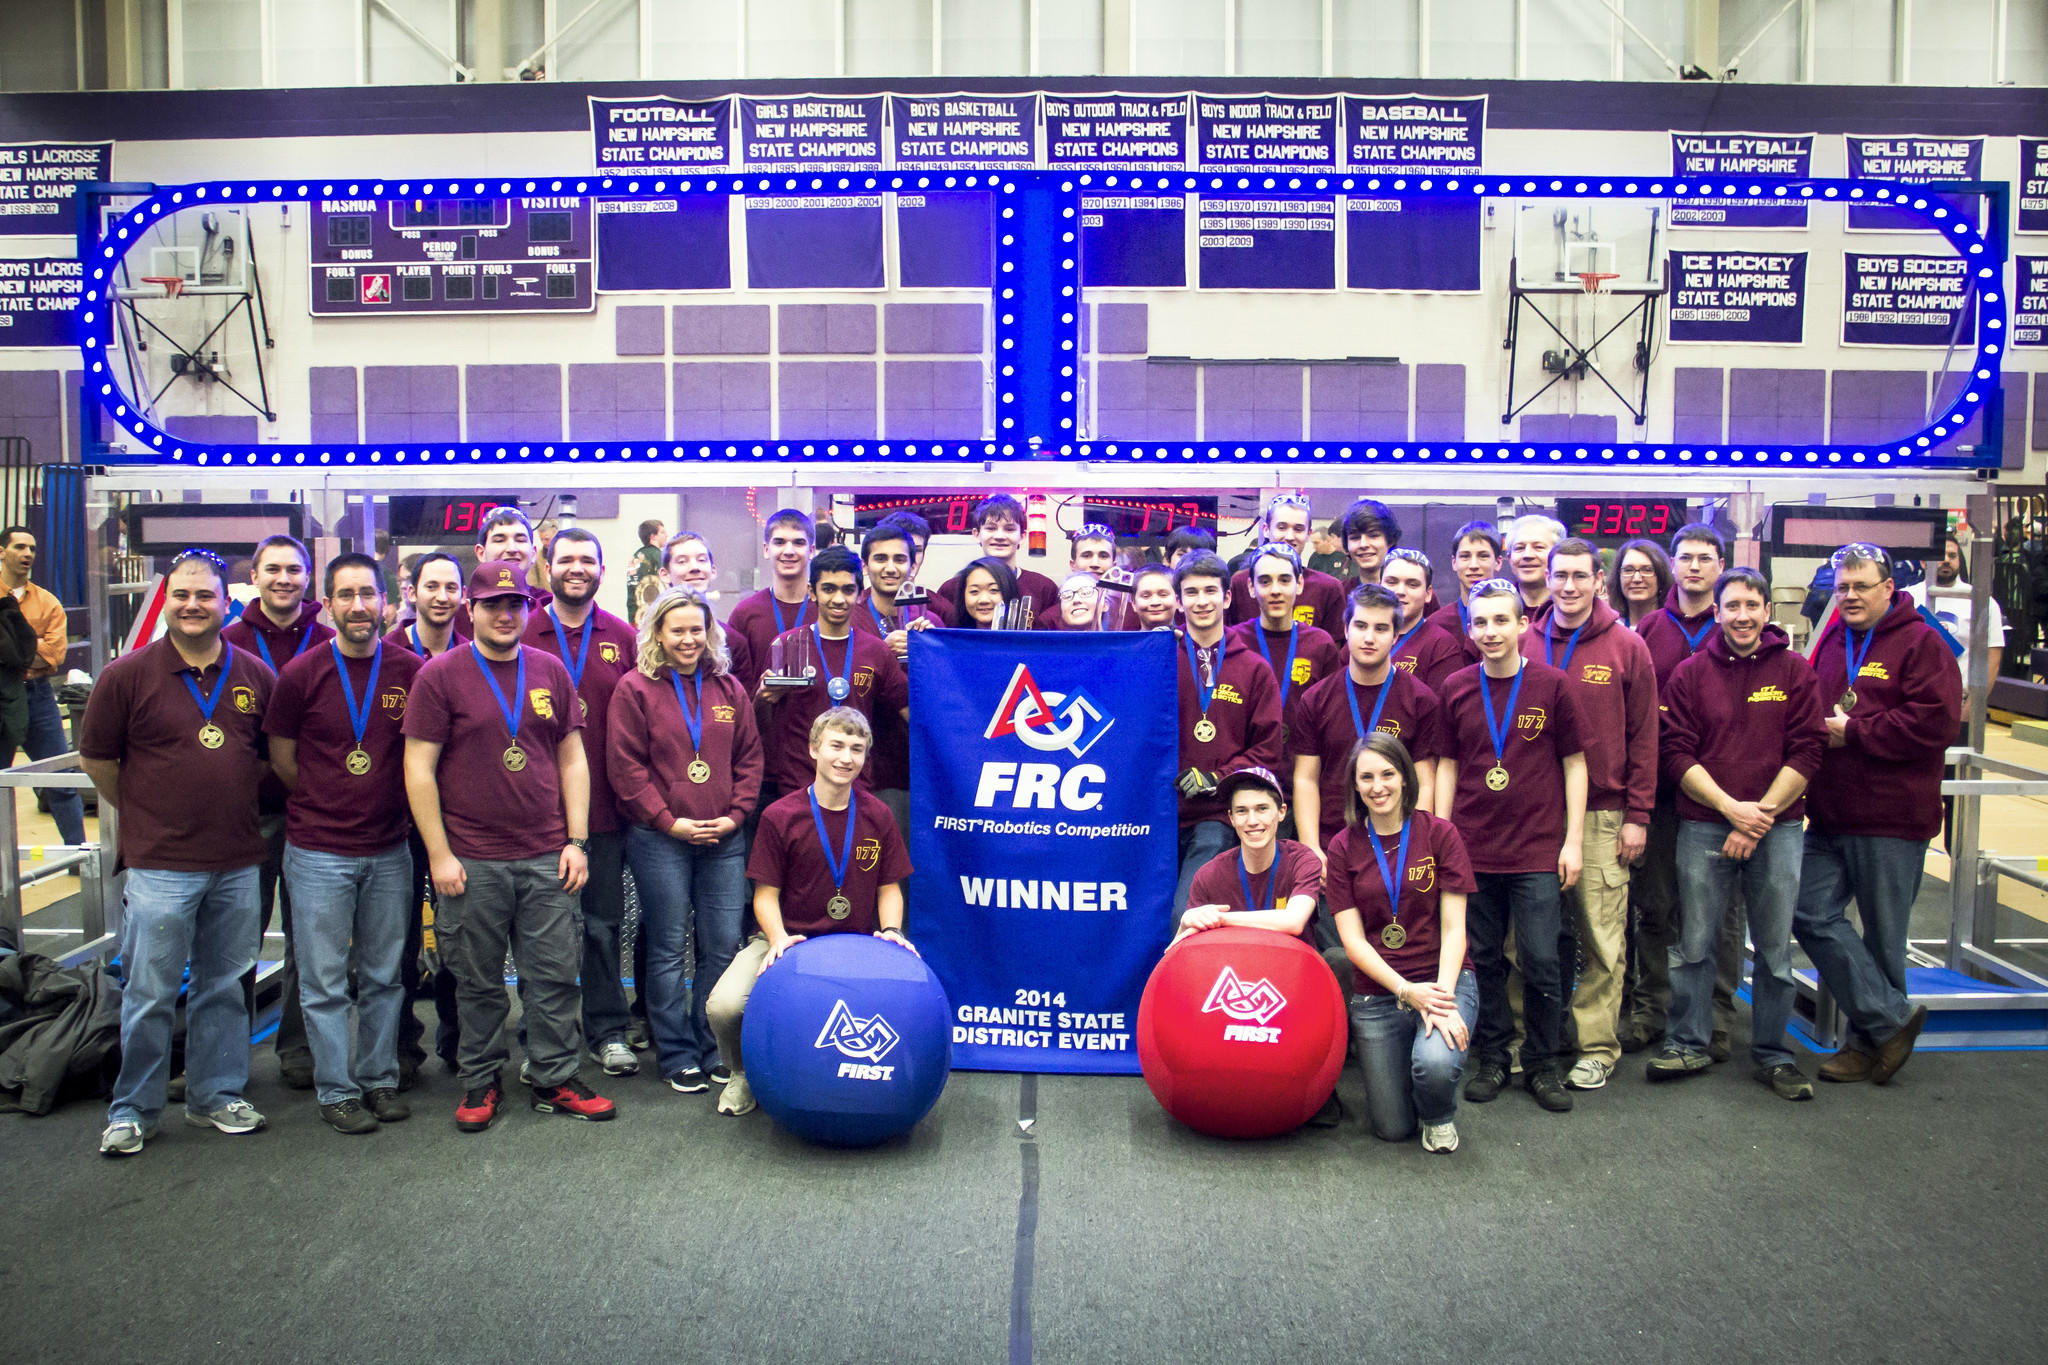 Bobcat Robotics Celebrating Their Win. Back row, from left to right: David Bridge, Evan Goldberg, Jacob Troiano, Jesse Wilkinson, Evan Angell, Tony Valente, Rahul Rajagopalan, Alex Griswold, Micael Brower, Ben Liebman, Anthony Coralli, Teddy Tavernier, Matt Garneau, Brian Arnesen, Al Mothersele, Debbie Tavernier, David Schroeder, Chris Carnevale, Ulf Jonsson. Middle row, from left to right: Pete Matteson, Steve Cohen, Hootan Kashi, Lynn Casagranda, Prathamesh Bang, Emma Guo, Allison Conklin, Benjamin Dobbs, Ethan Aries, Shane McCarthy, Austin Lavigne, Joe Howell, James Desmond, Eric O'Brien. Front row, from left to right: Michael Liebman, Michael Lillis, Jamie Lang.